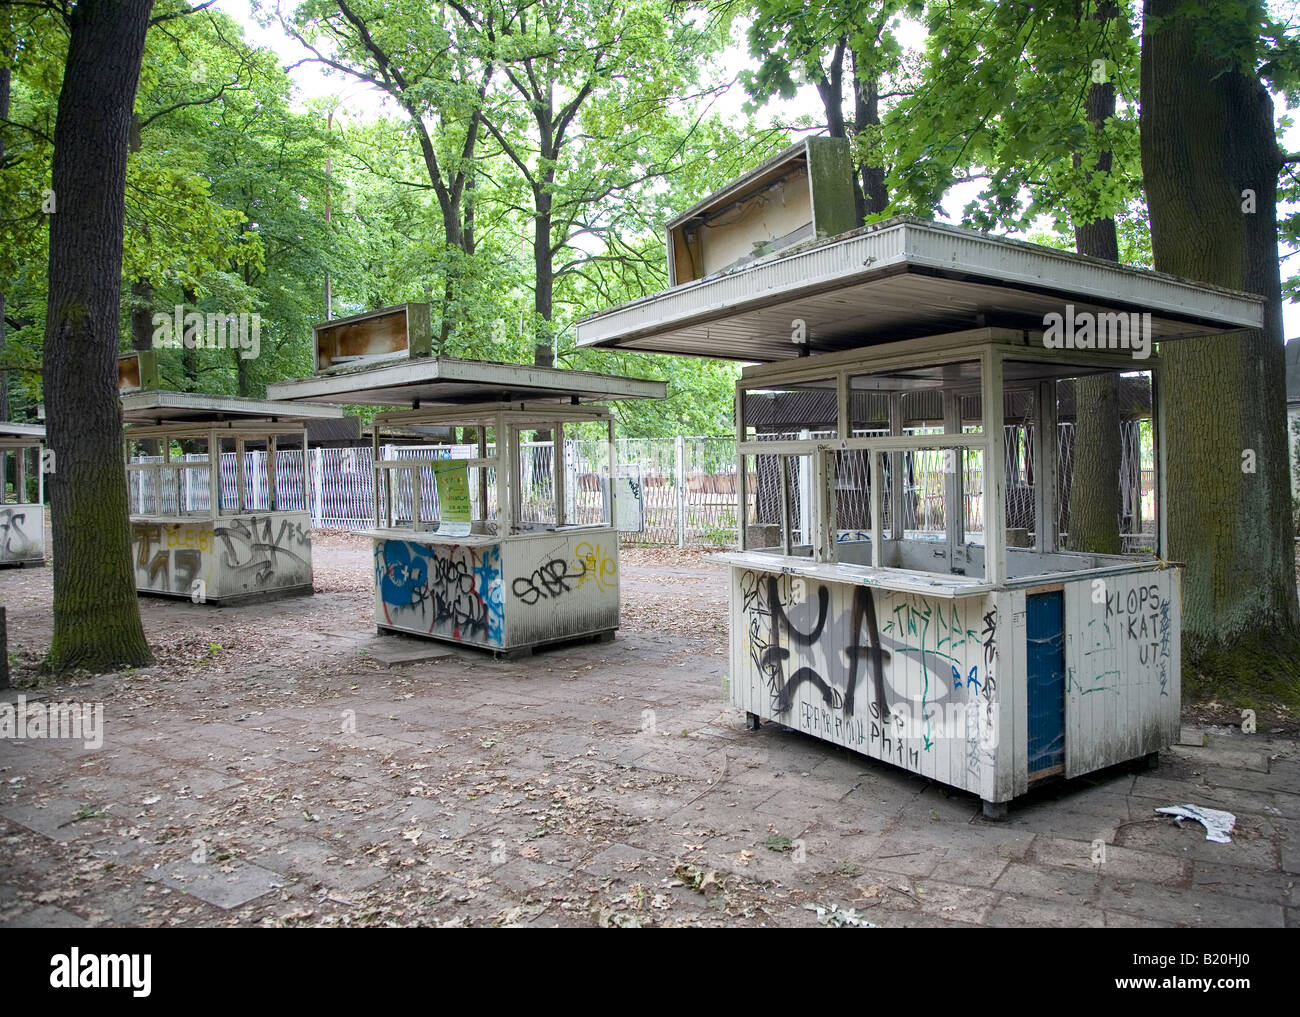 A Row Of Ticket Booths At An Old Abandoned Theme Park In Berlin Stock Photo Alamy